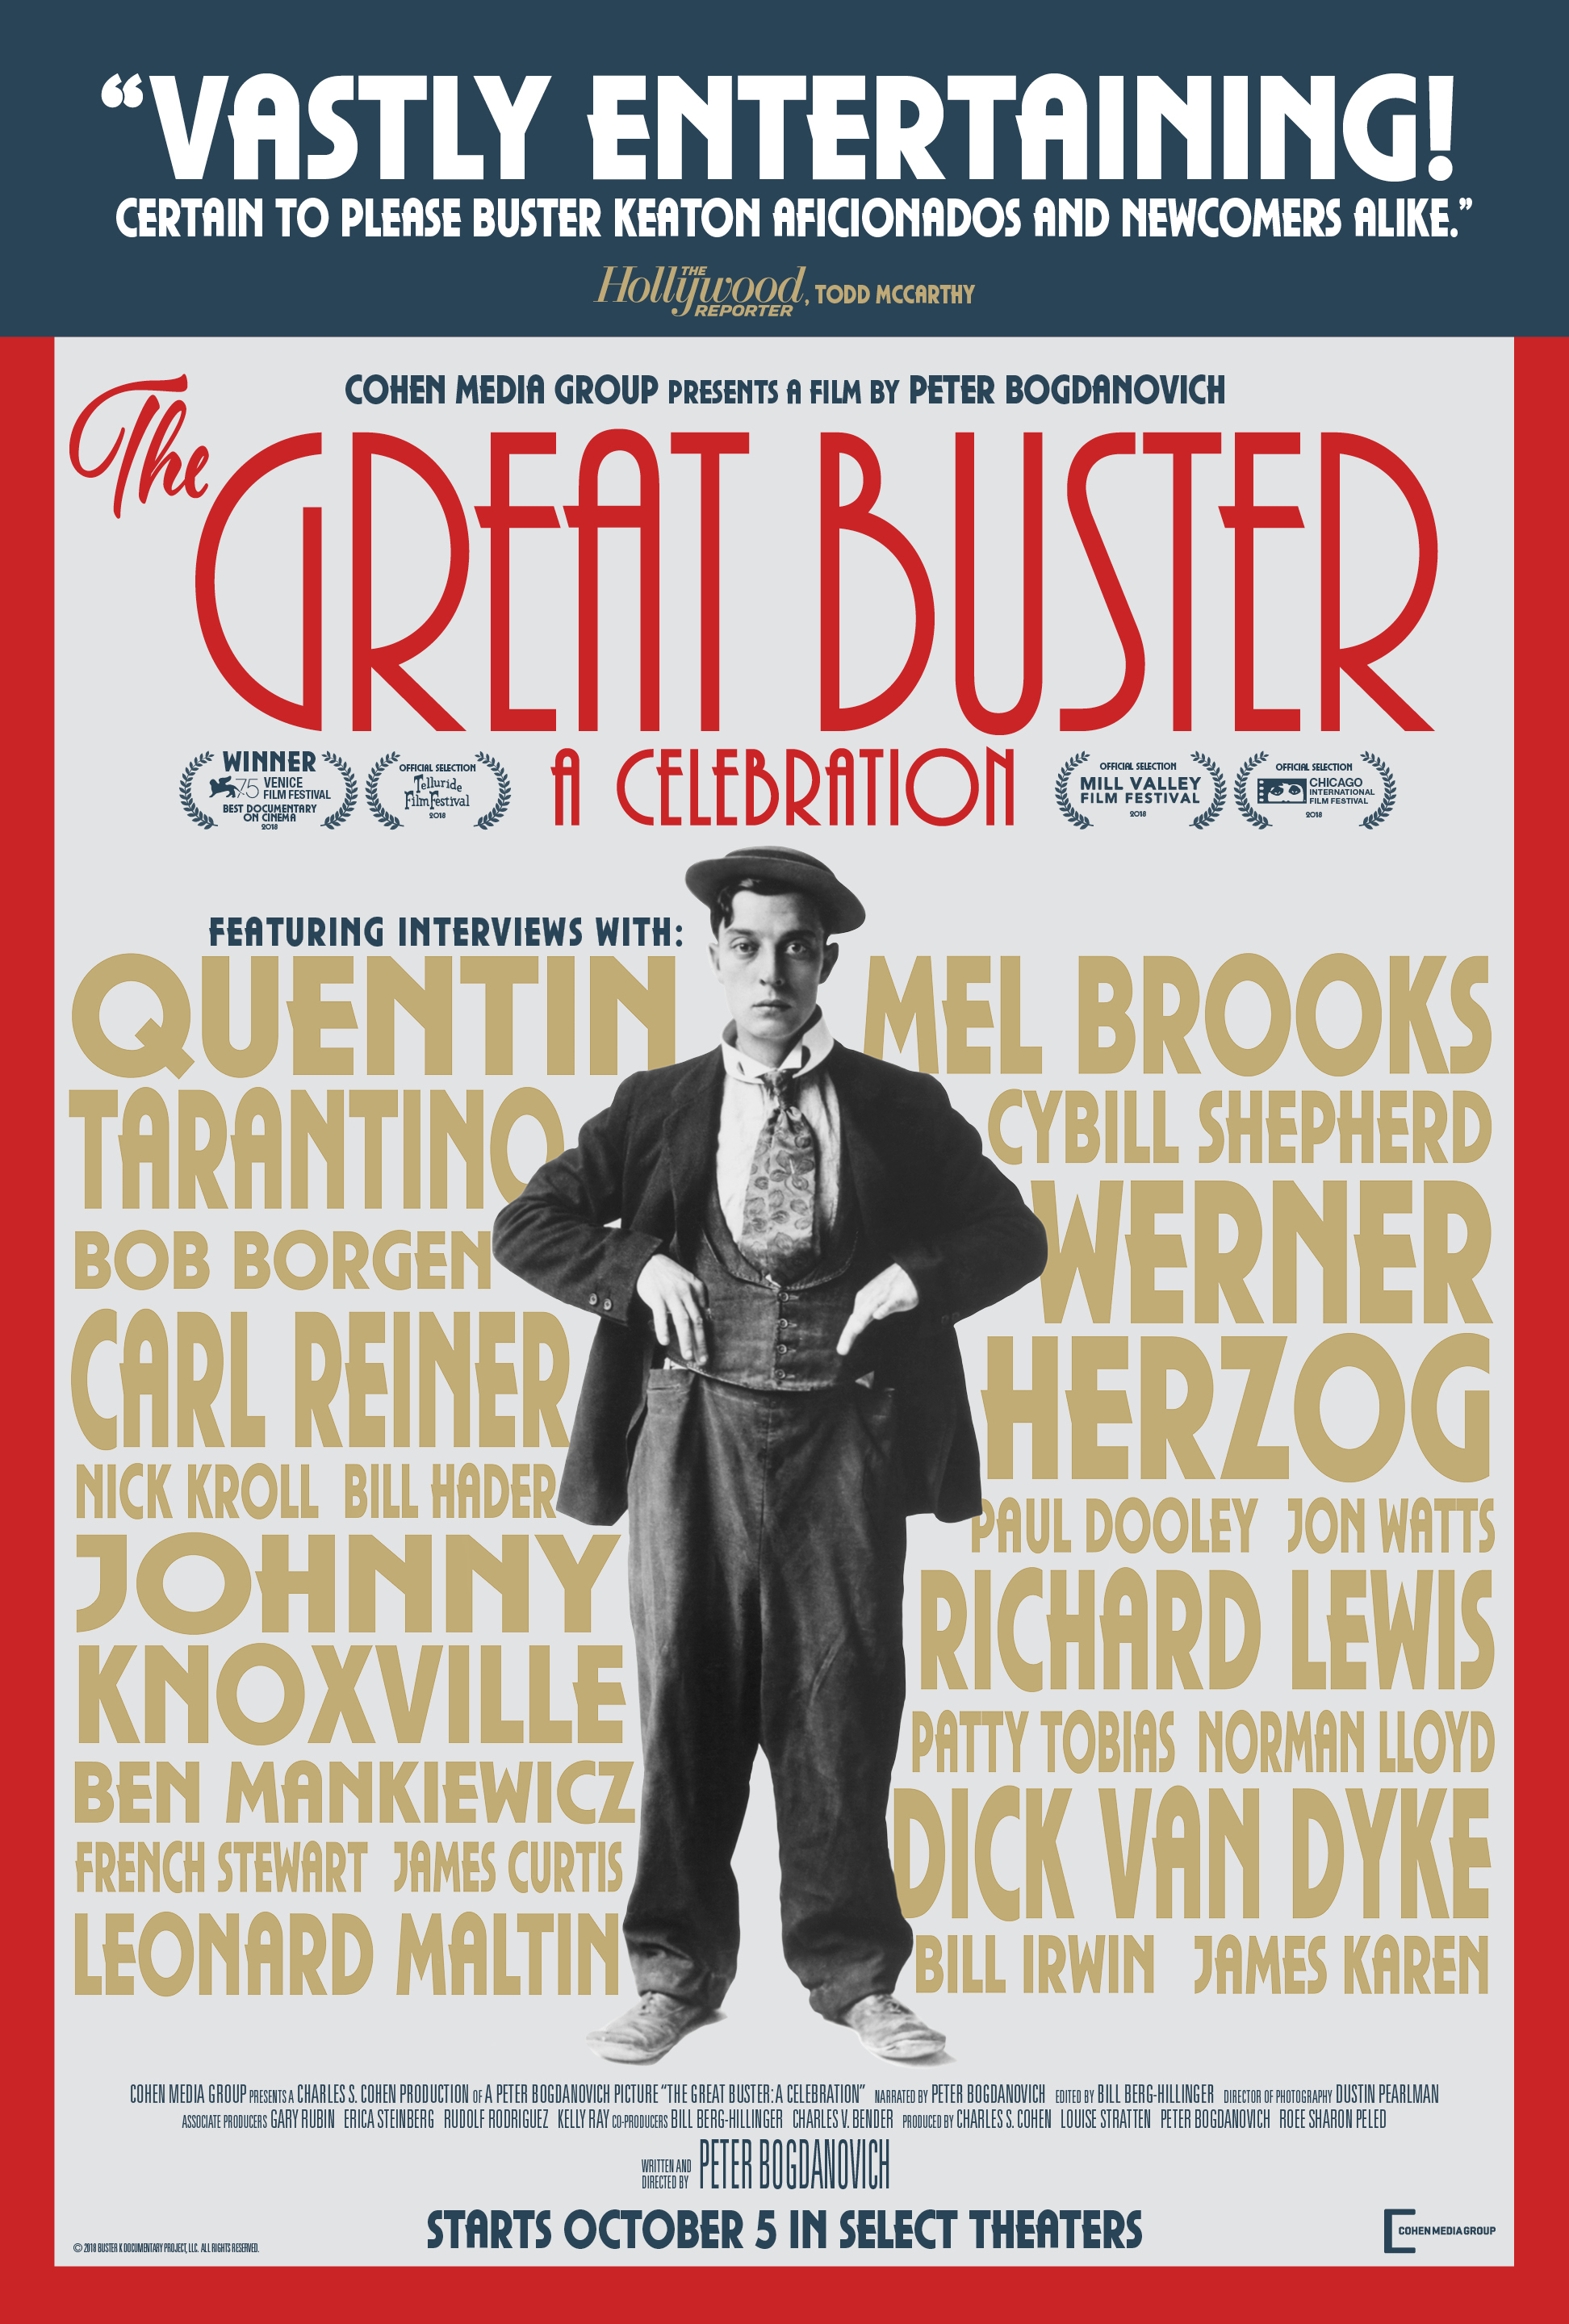 Buster Keaton in The Great Buster (2018)